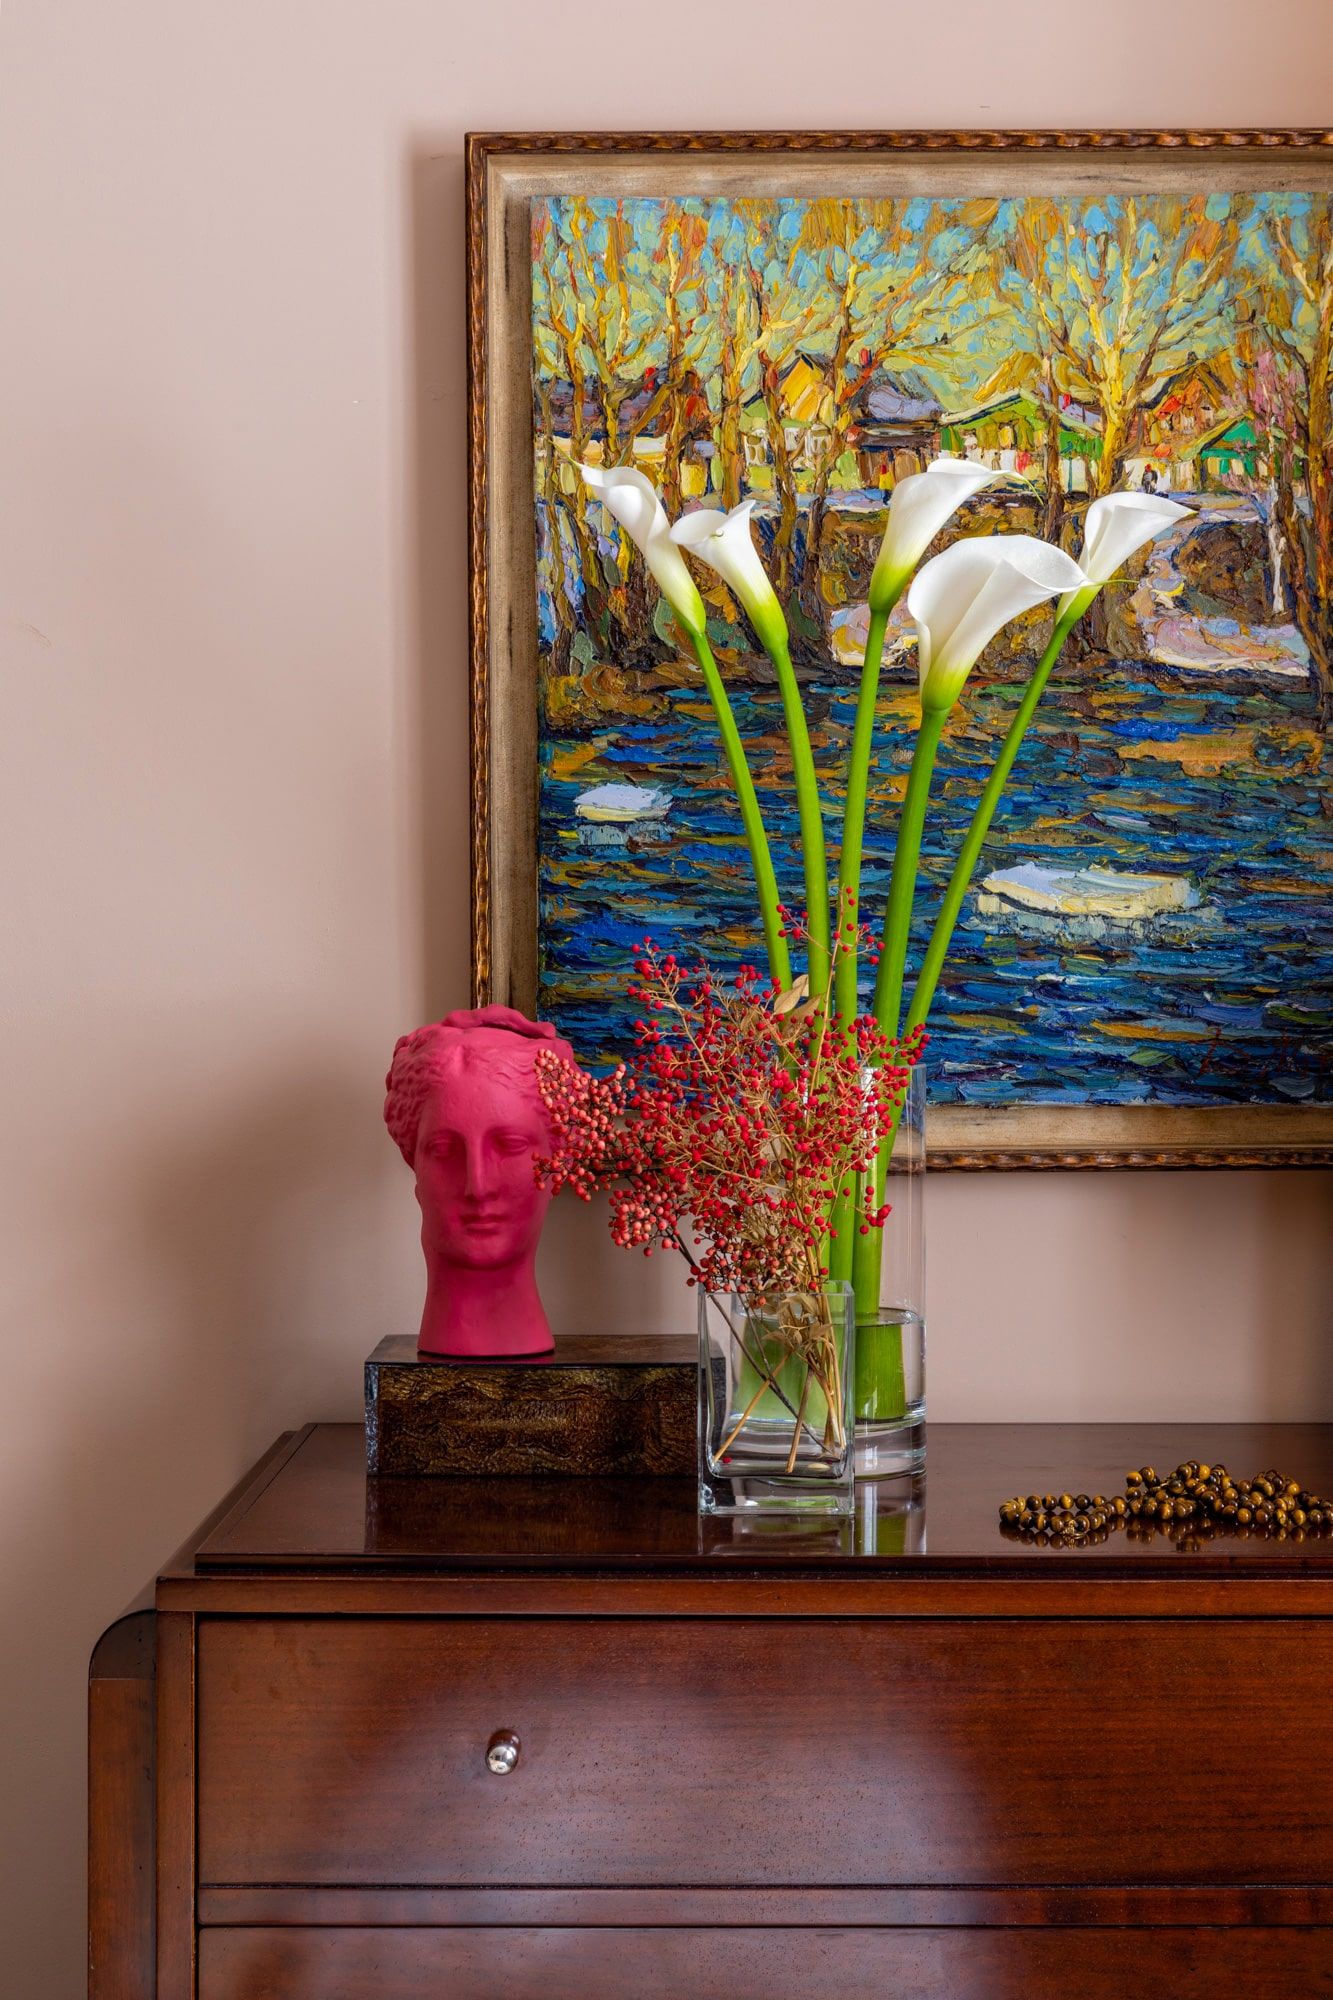 Detail interior photo of a bedroom: pink salmon wall, chest of drawers, with a red female bust  and a vase with white flowers on top; a vivid colors painting on the wall